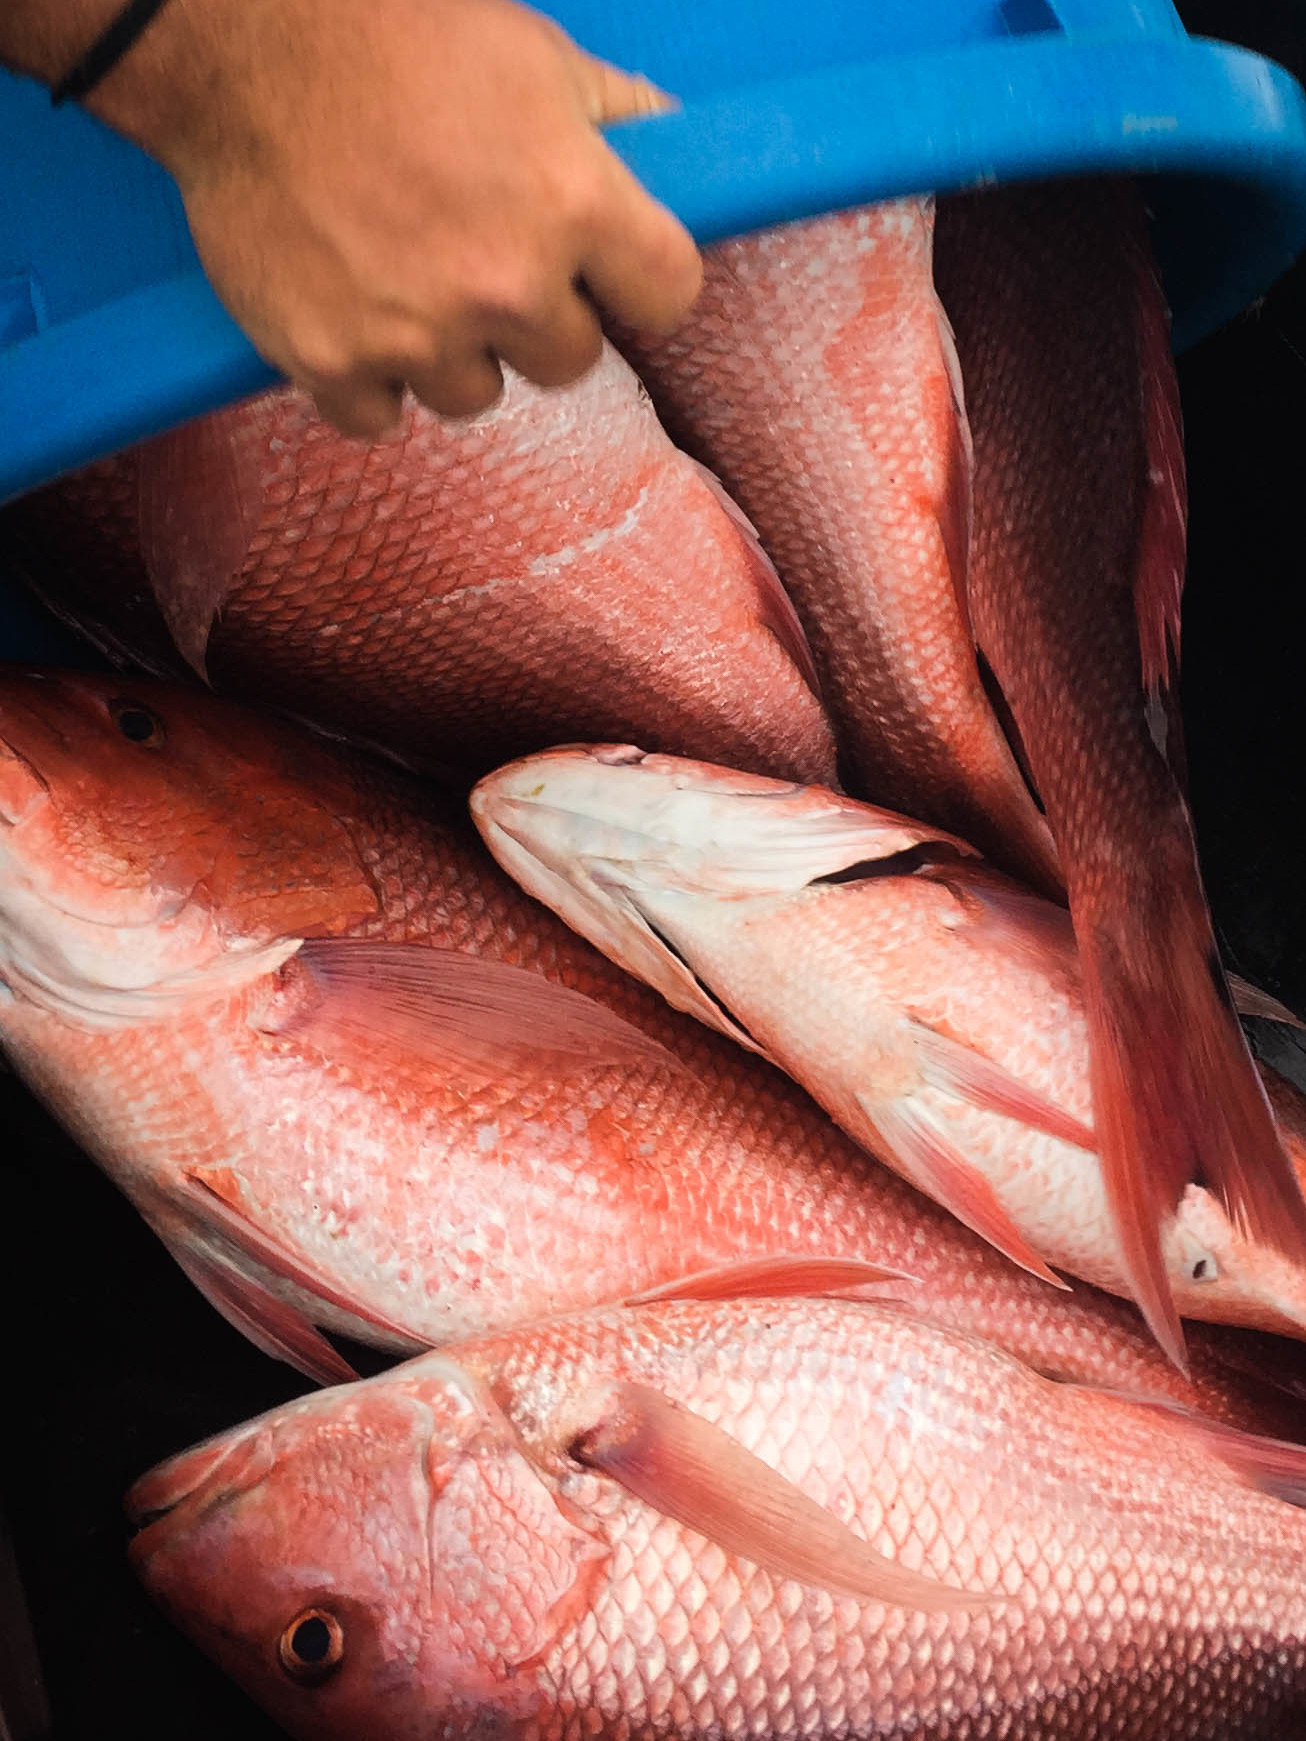 Recreational fishermen say red snapper are abundant in the Gulf of Mexico and question the stock assessments behind strict government quotas on the catch. (Debbie Elliott/NPR)